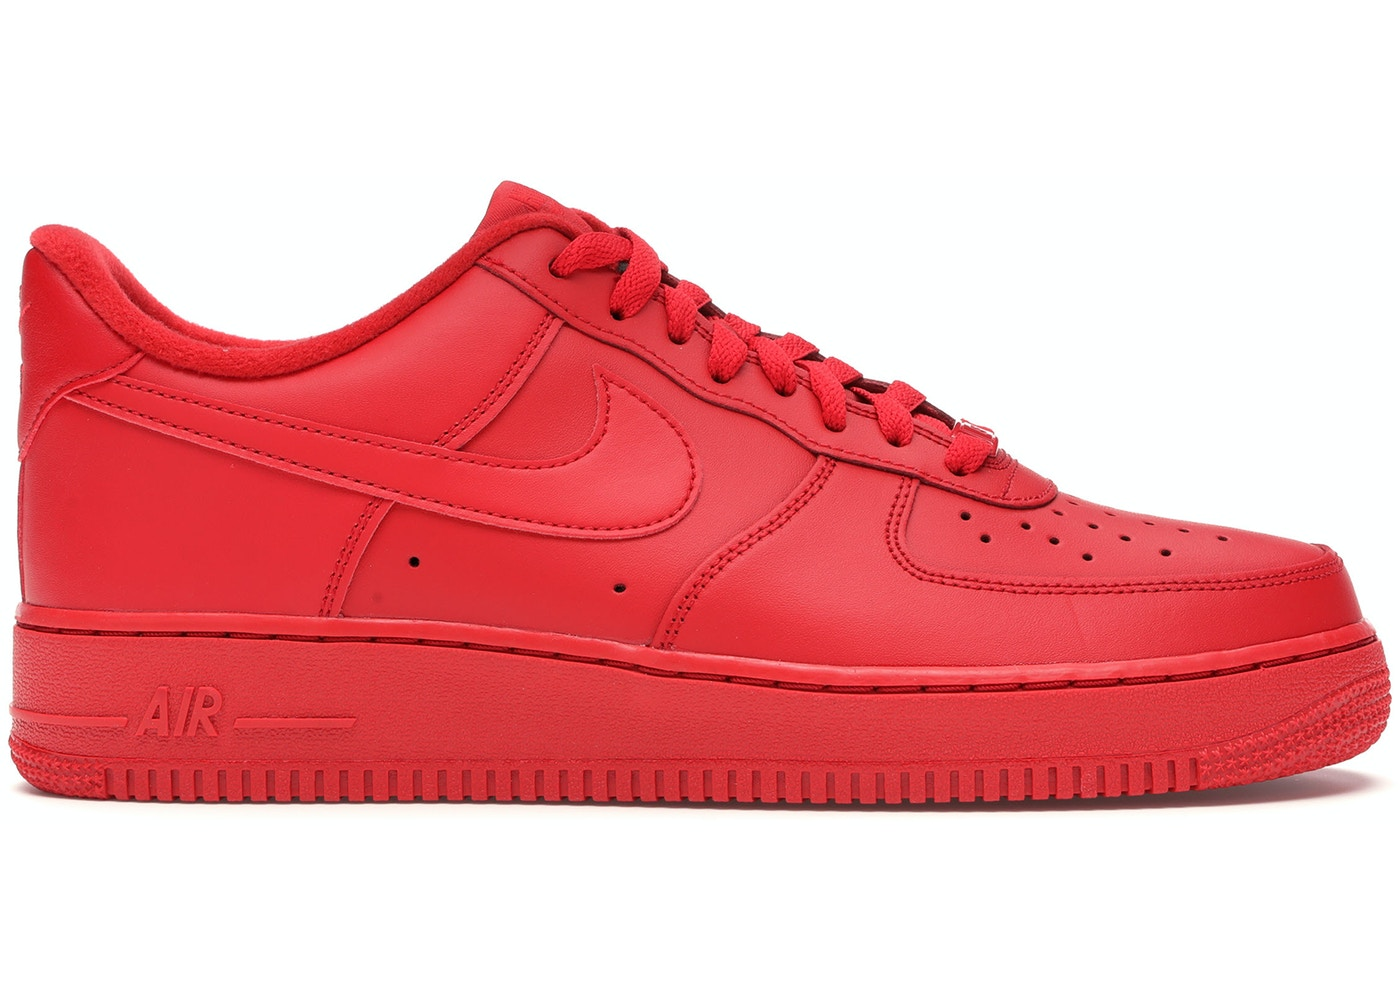 Nike Air Force 1 Low Triple Red Cw6999 600